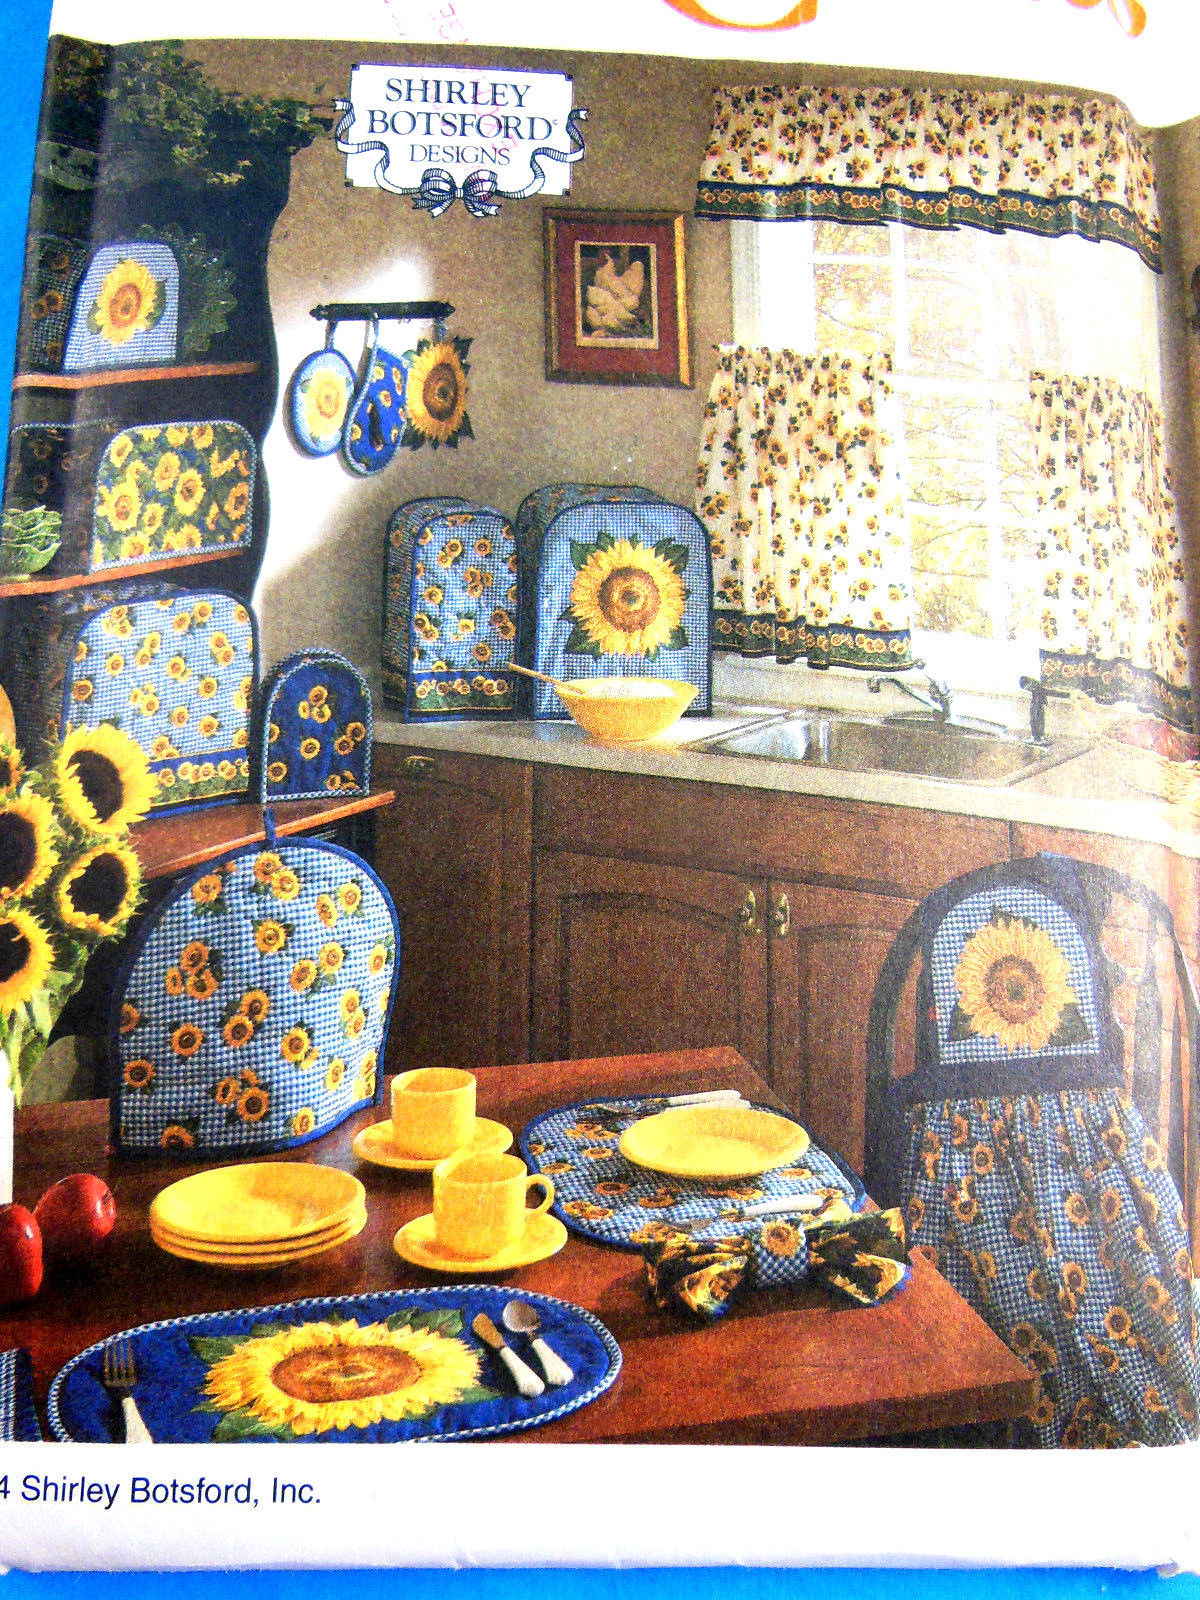 Primary image for SIMPLICITY CRAFTS PATTERN 8880 SHIRLEY BOTSFORD DESIGNS KITCHEN ACCESSORIES